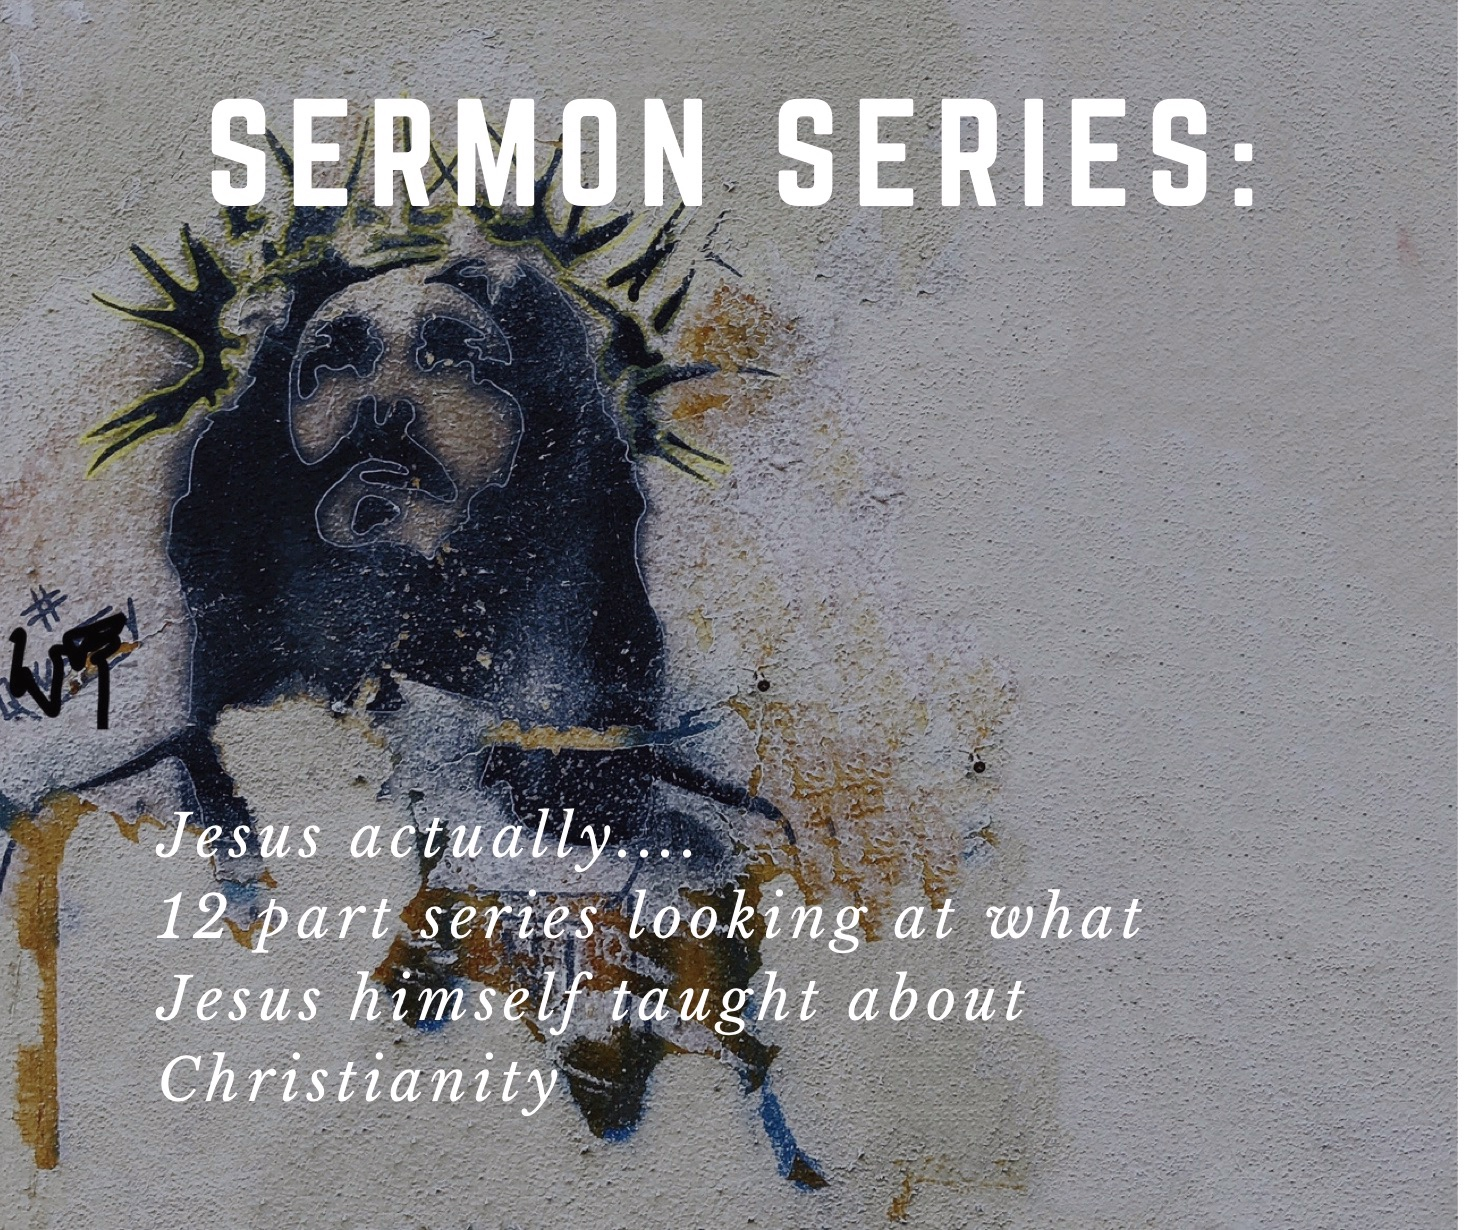 Sermon series Jesus actually.jpg